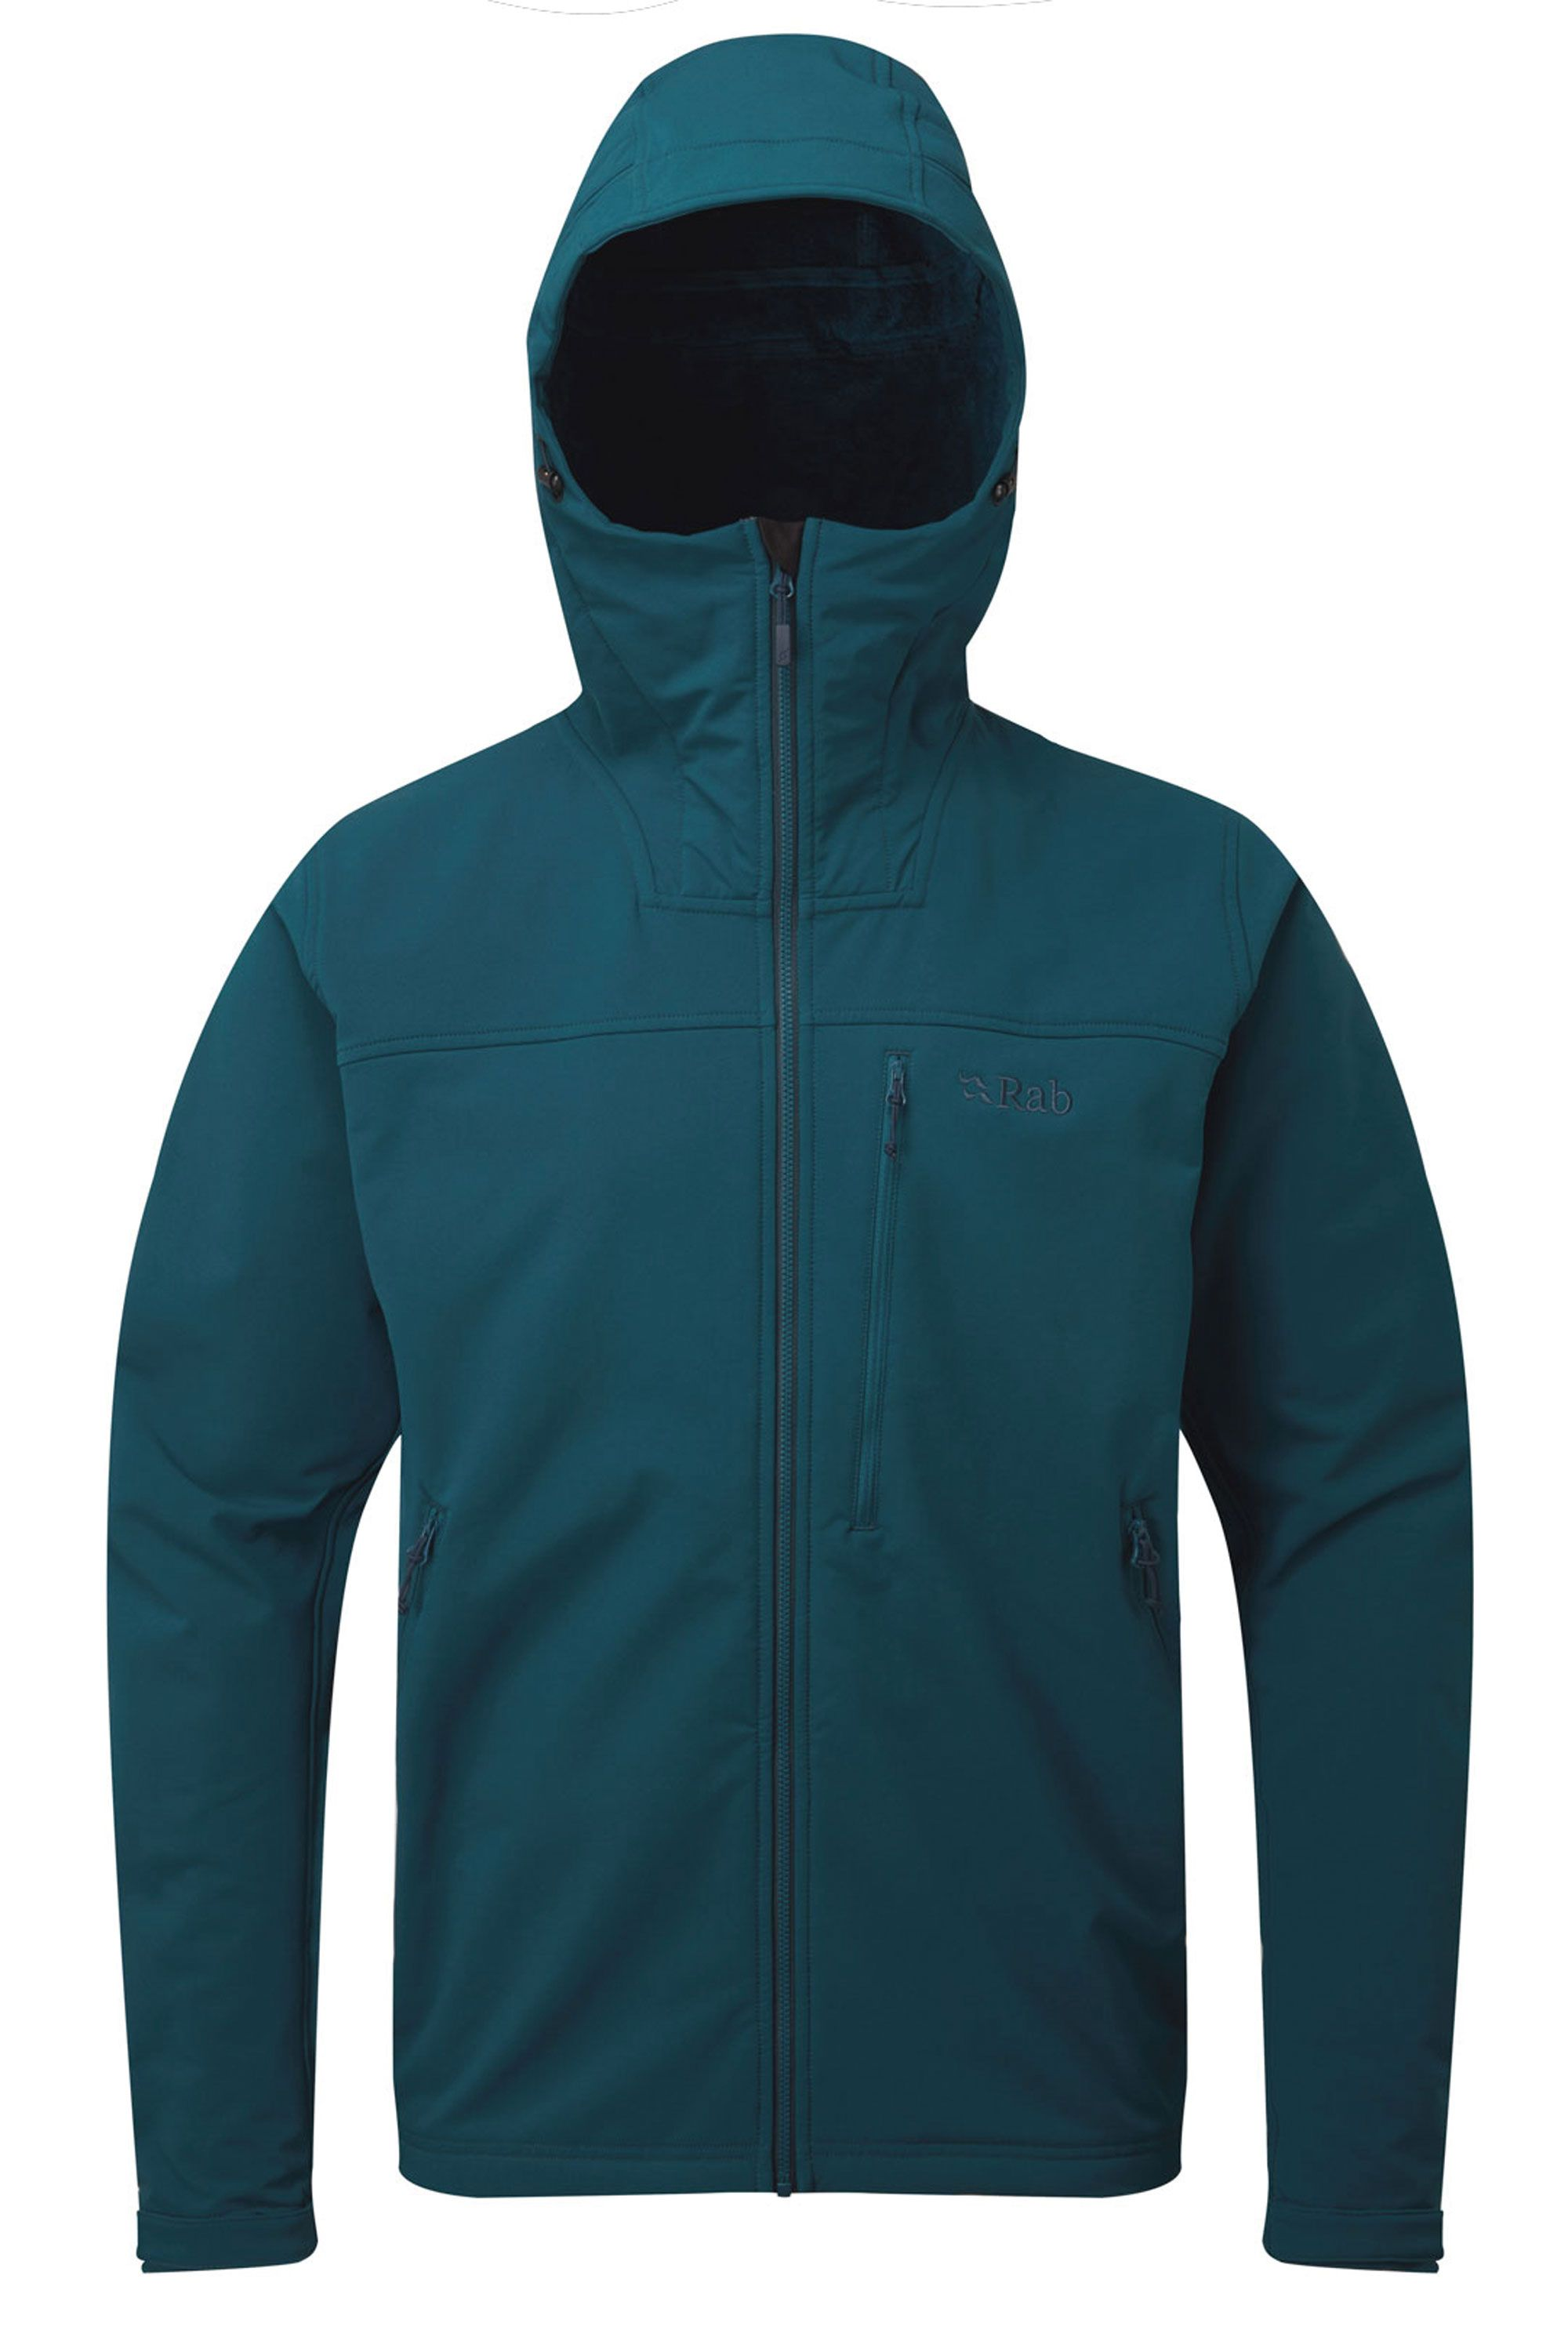 Rab Integrity Jacket